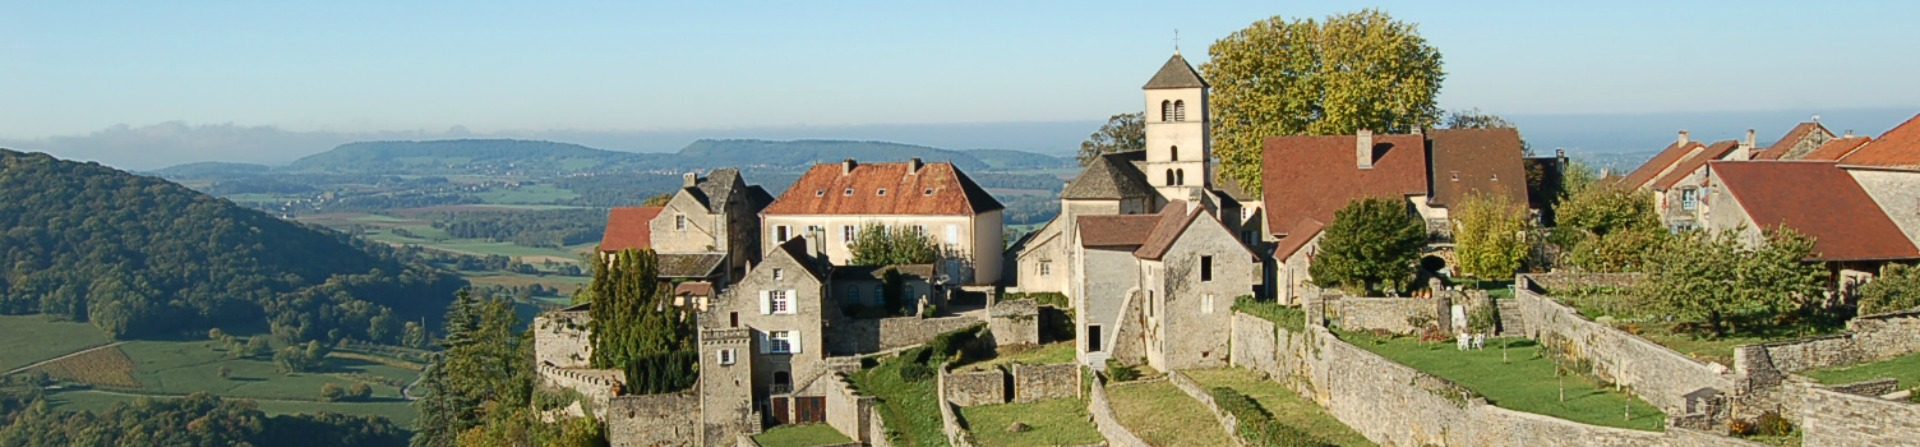 Village-chateau-chalon